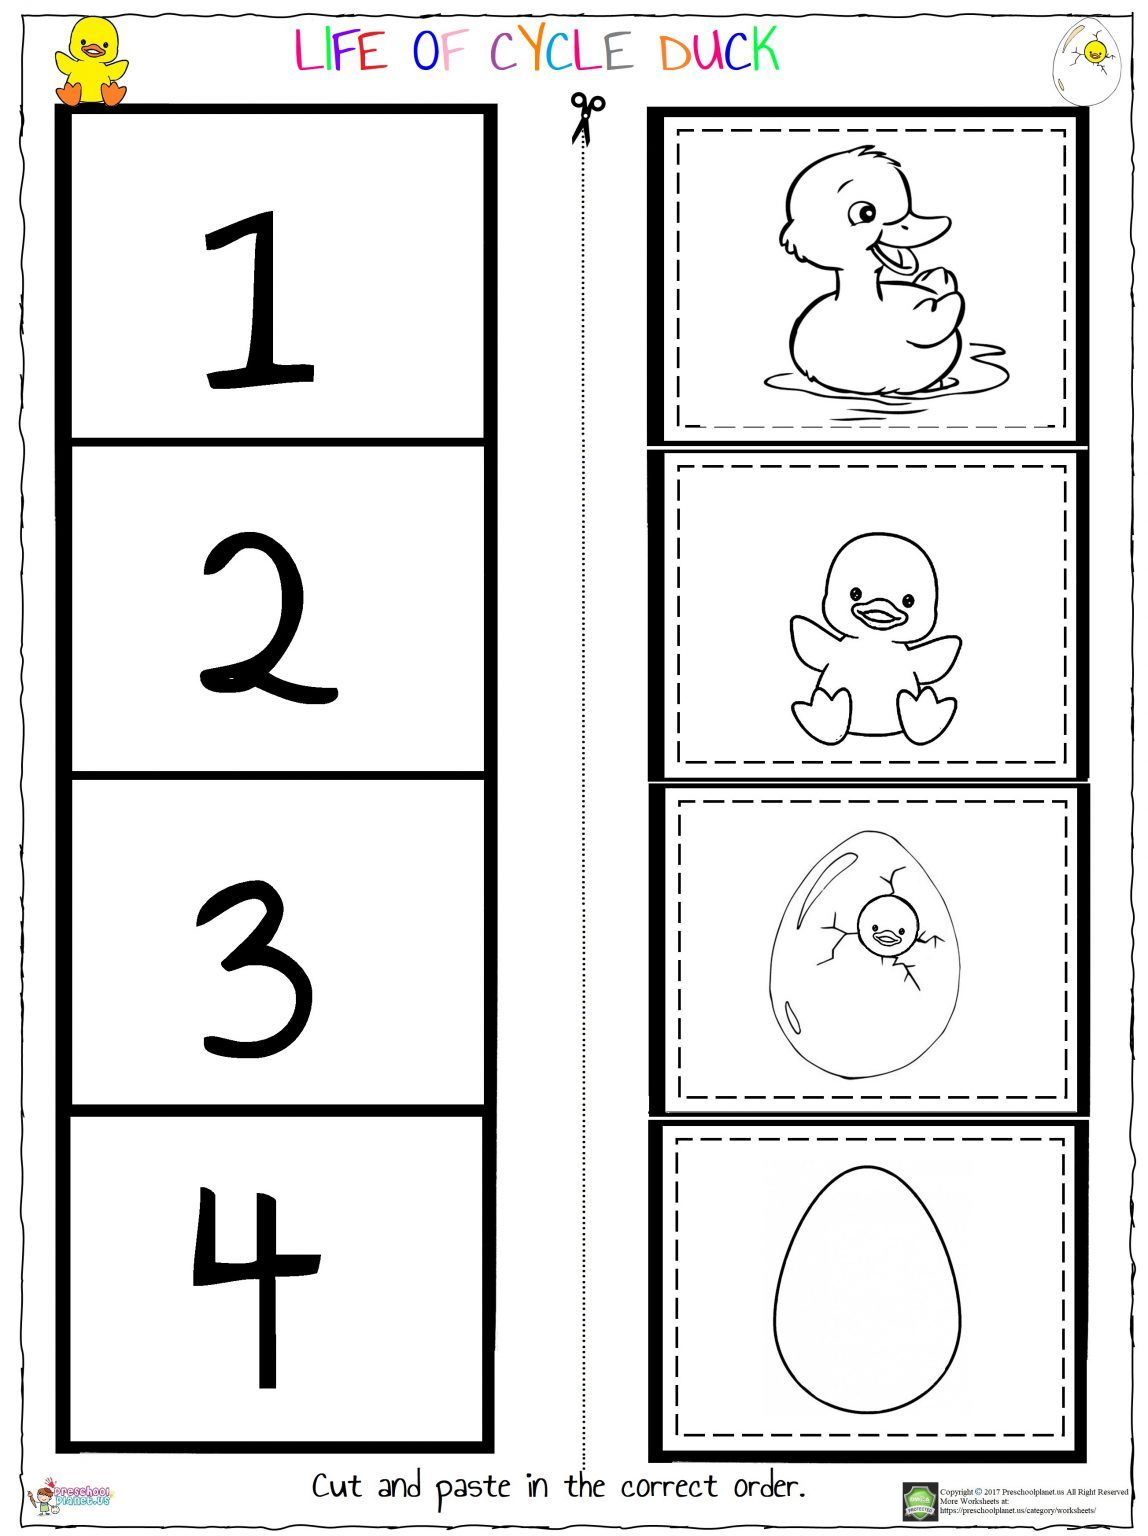 Life Of Cycle Duck Worksheet Preschoolplanet In